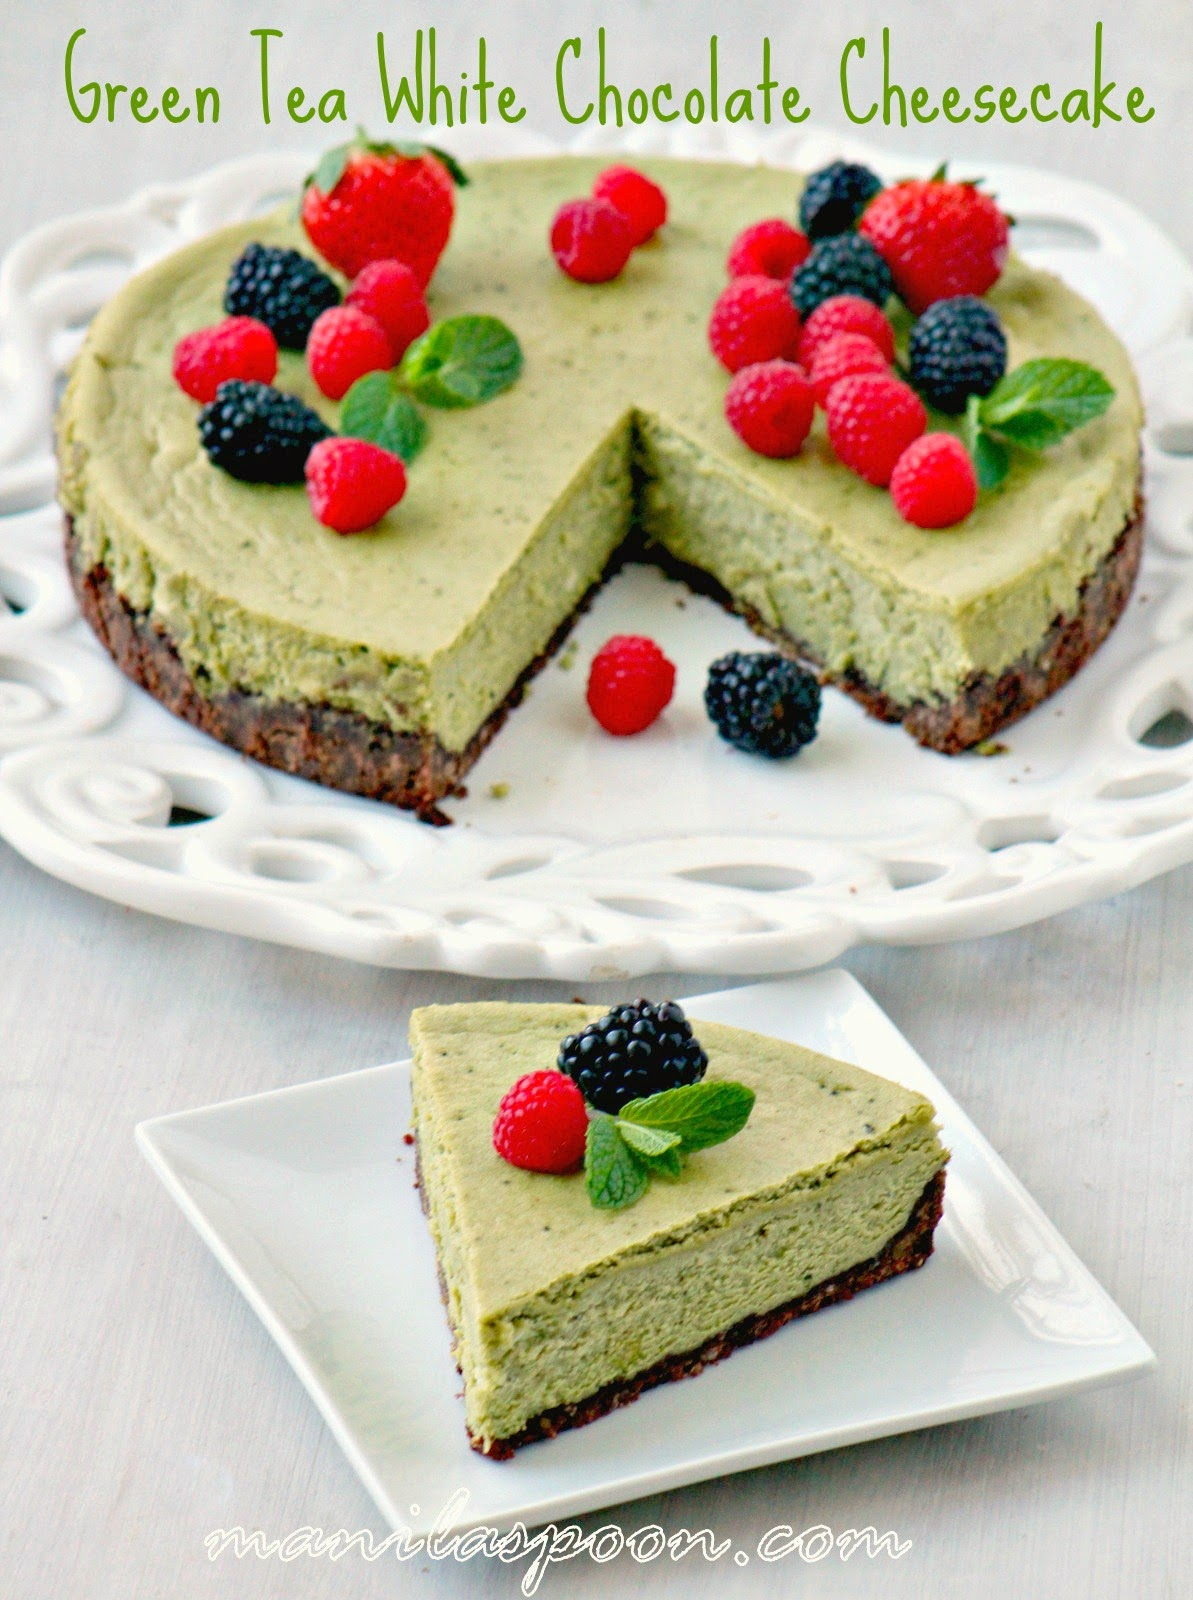 A rich and luxurious GREEN TEA WHITE CHOCOLATE CHEESECAKE with a subtle hint of green tea and the yummy flavor of white chocolate! This gorgeous cake is perfect for Christmas, New Year or any holiday! | manilaspoon.com